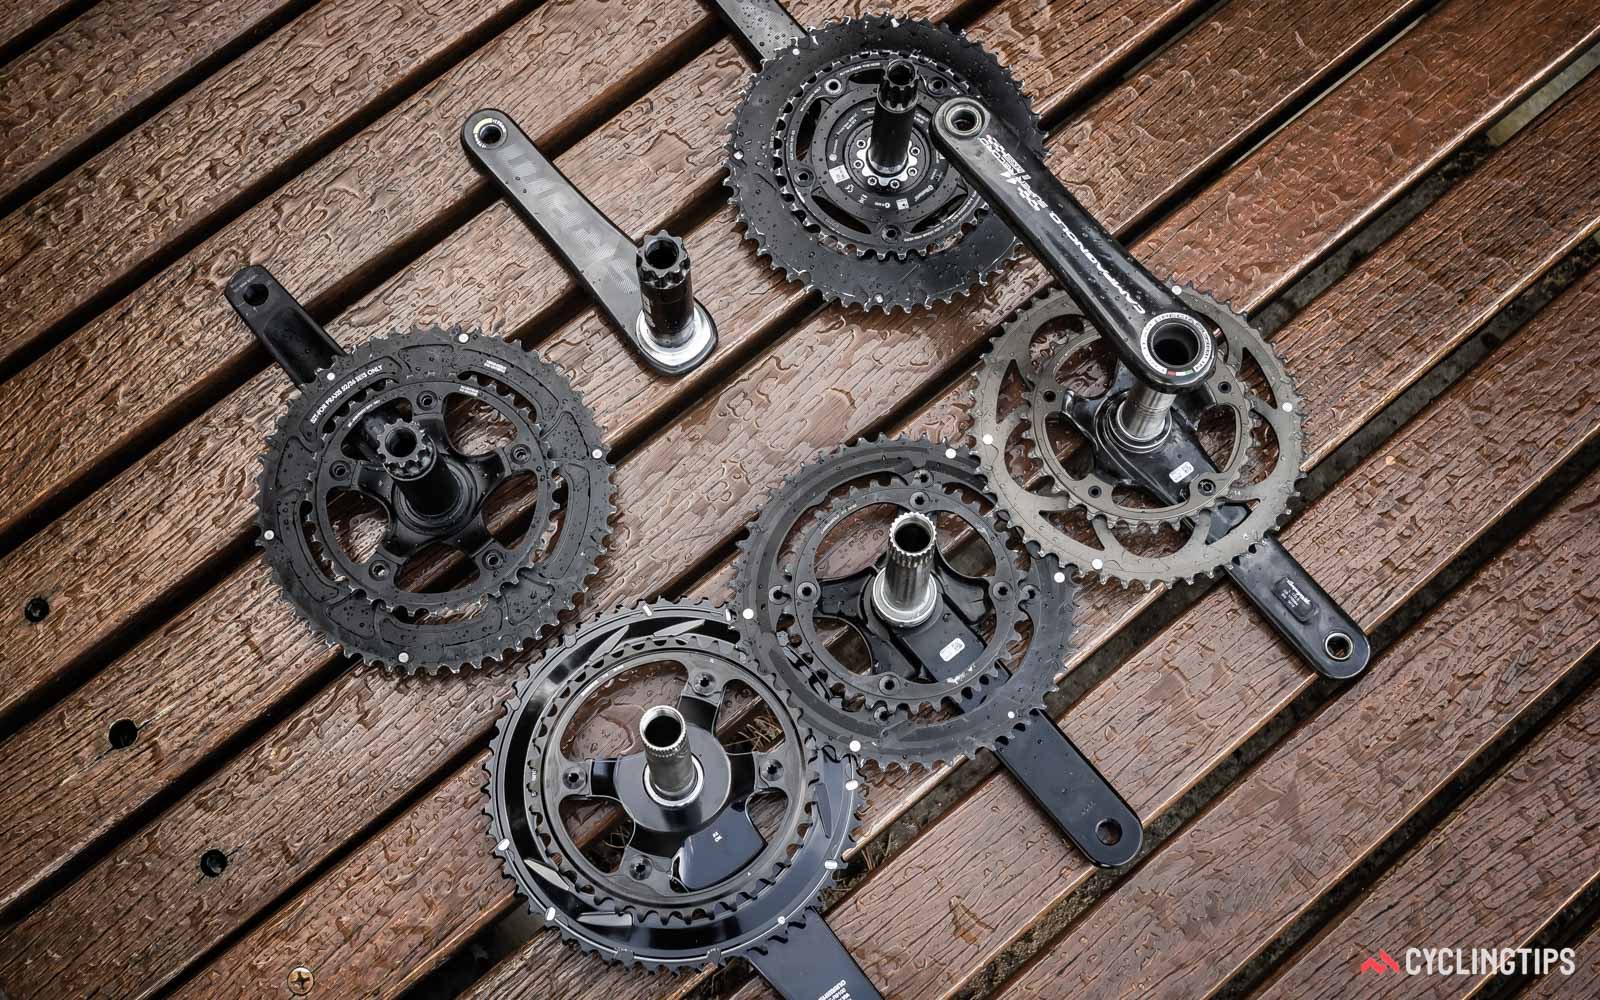 road cranks can have different axles that vary in diameter and length